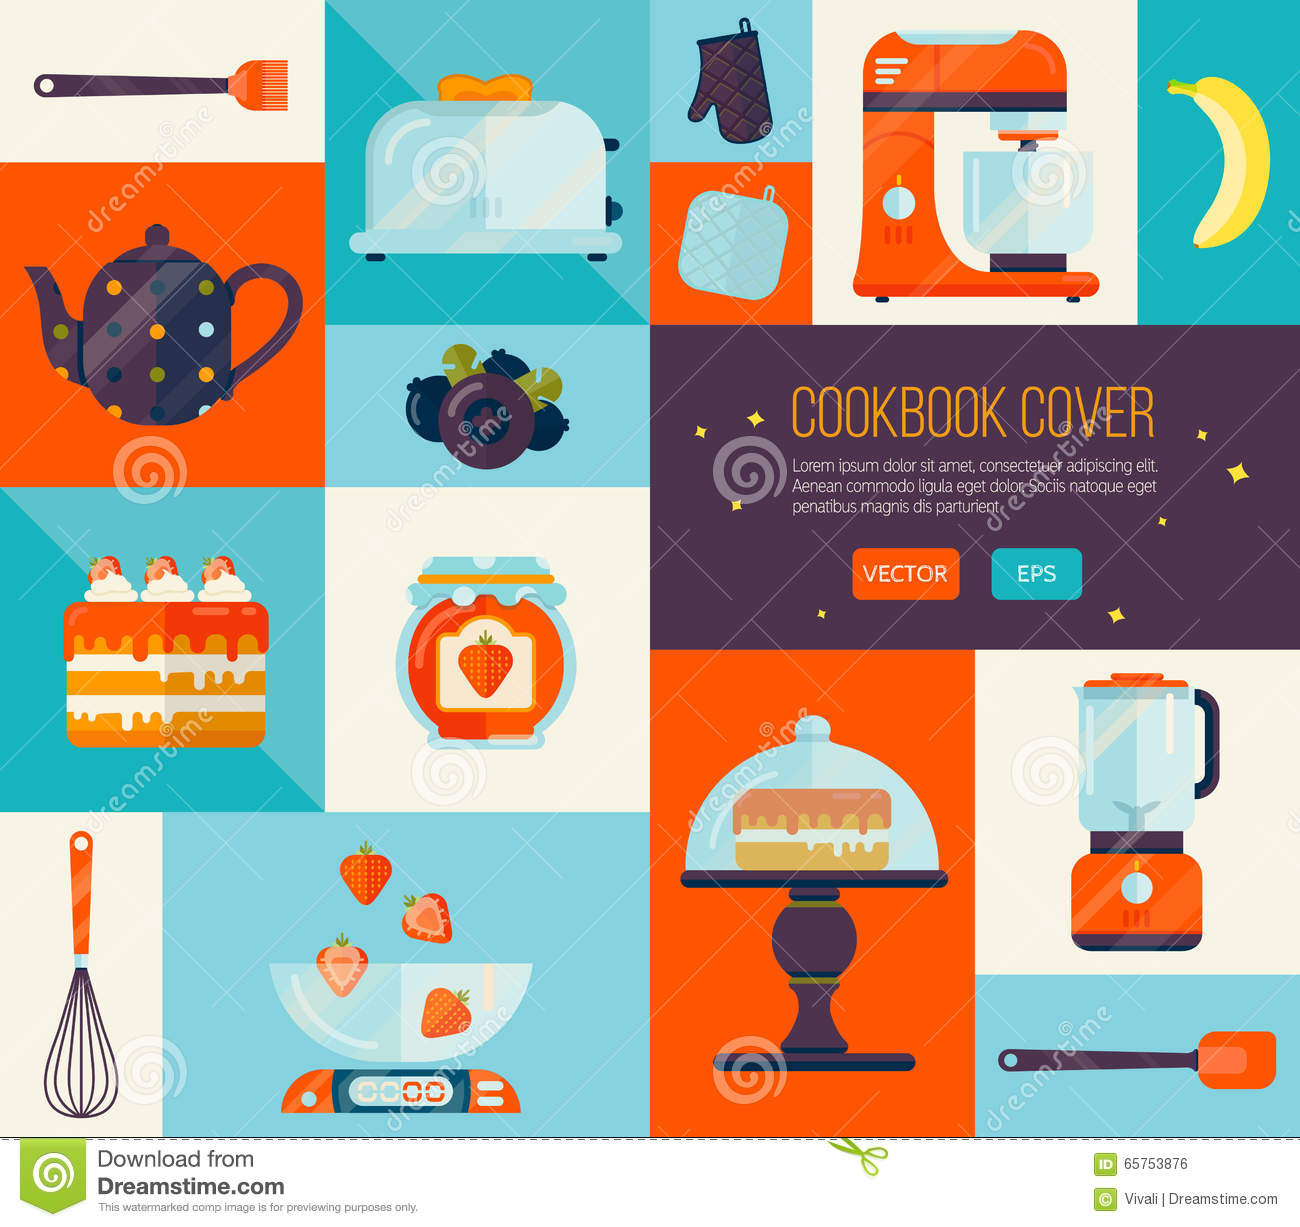 Cookbook Cover Vector : Cookbook cover in bright colors big vector cook icons set